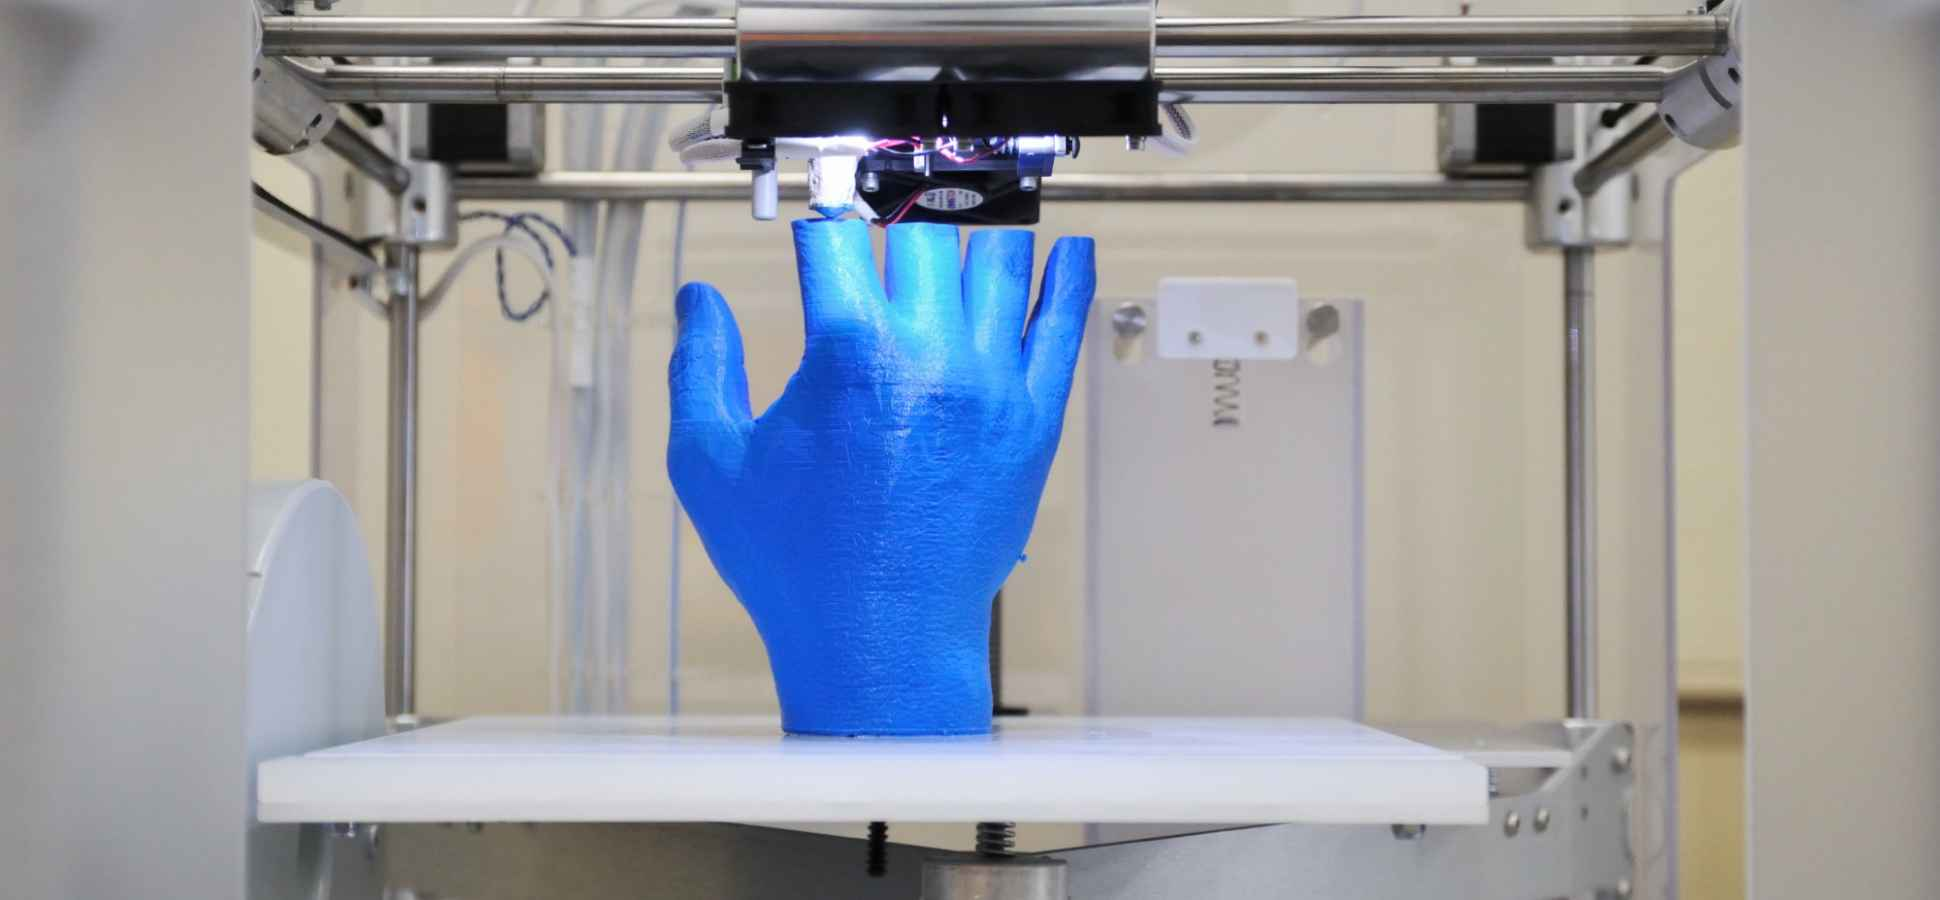 4-D Printing Is Everything 3-D Printing Wished It Could Be -- Here's Why